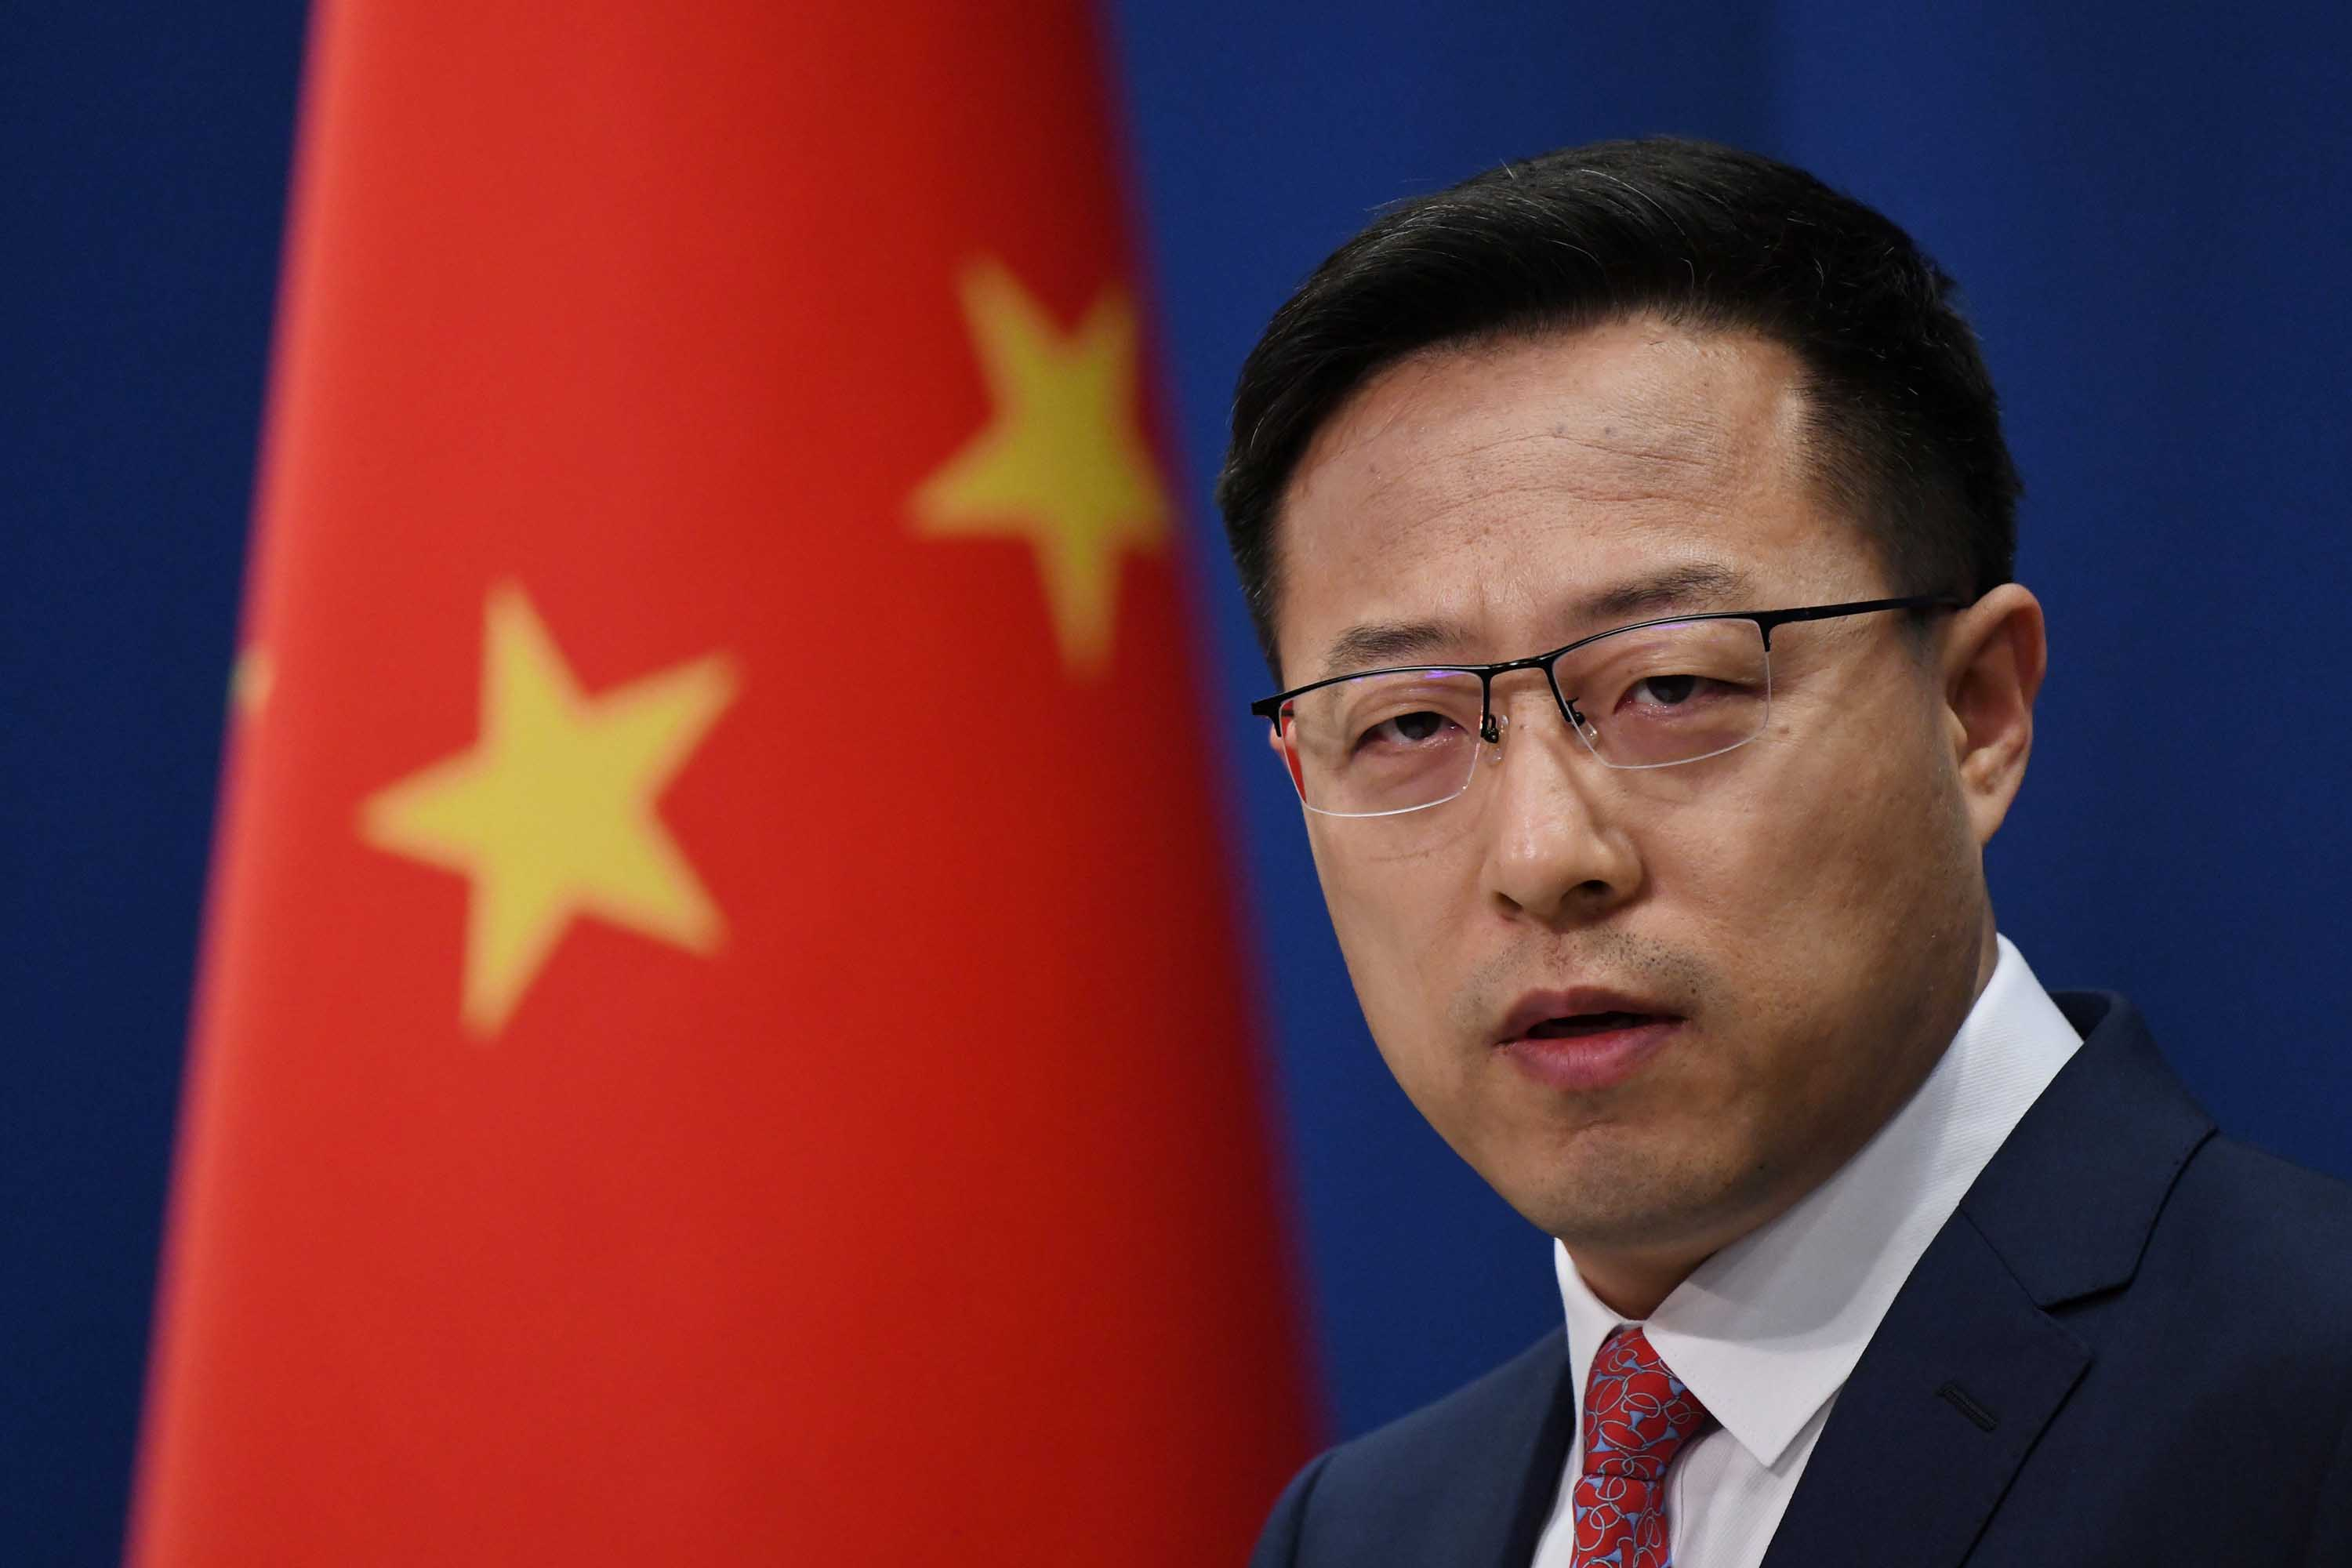 Chinese Foreign Ministry spokesman Zhao Lijian is pictured at a media briefing in Beijing, on April 8.